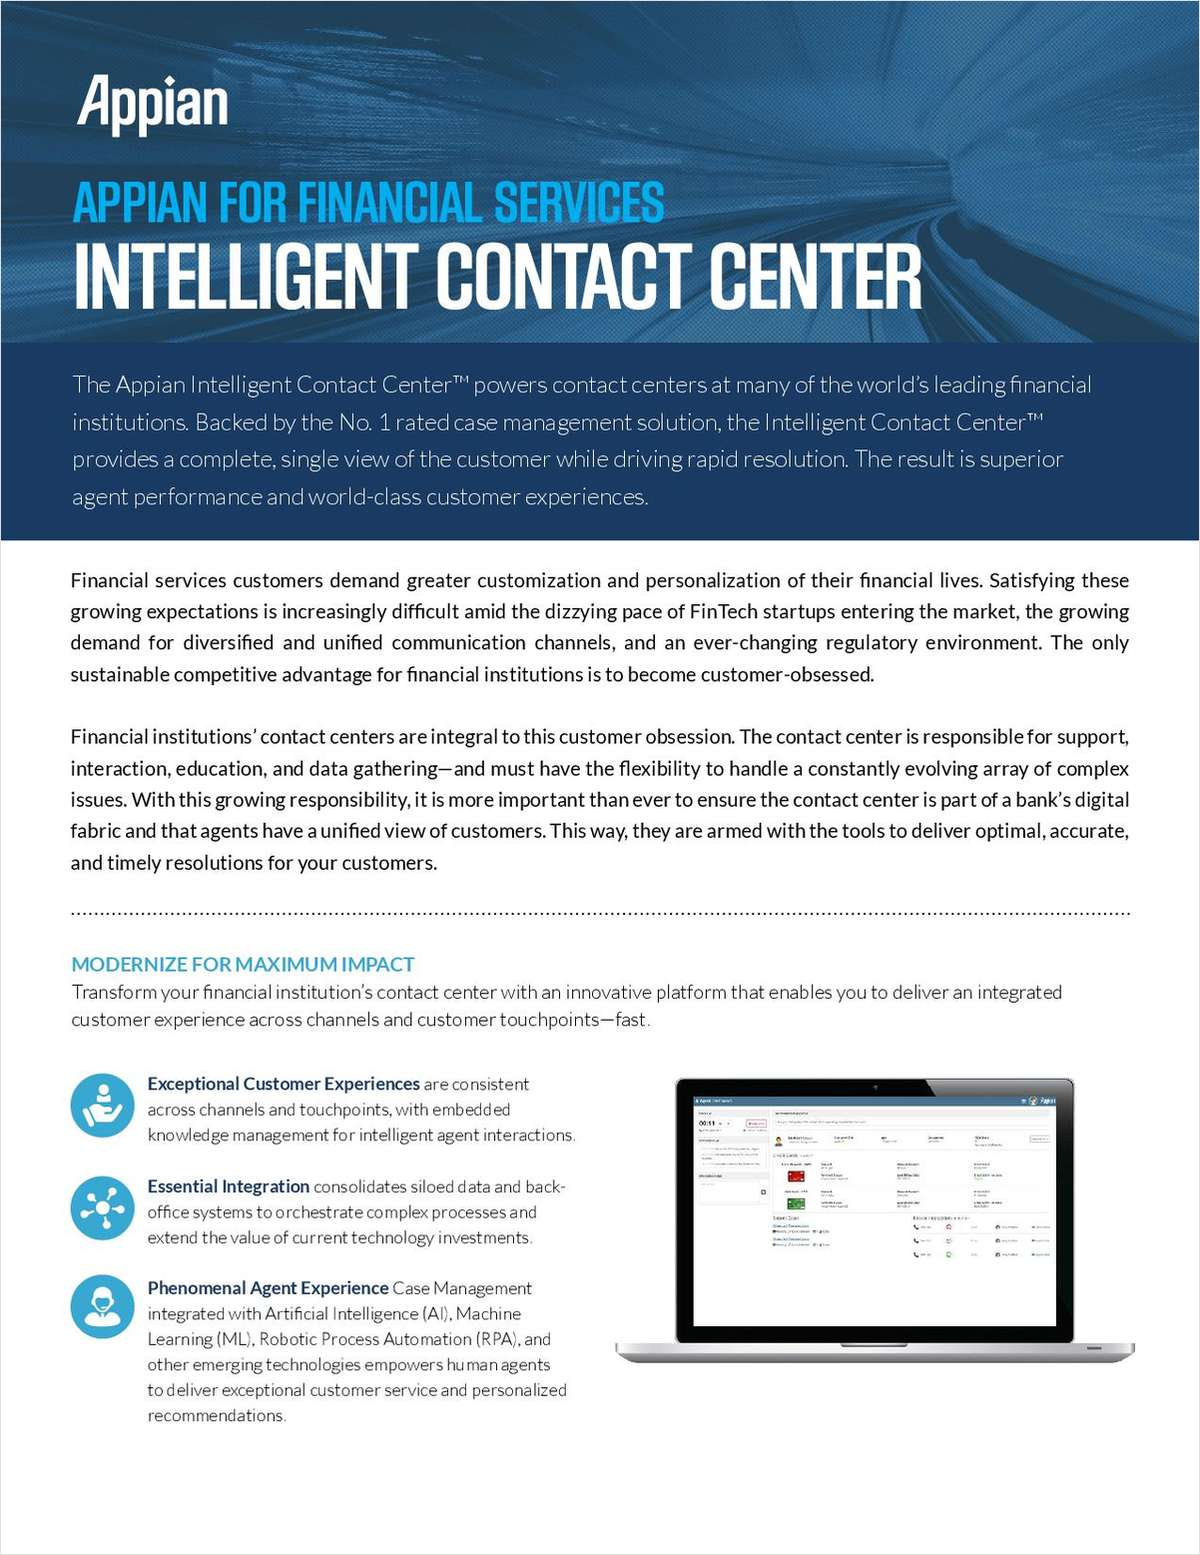 Appian for Financial Services: Intelligent Contact Center